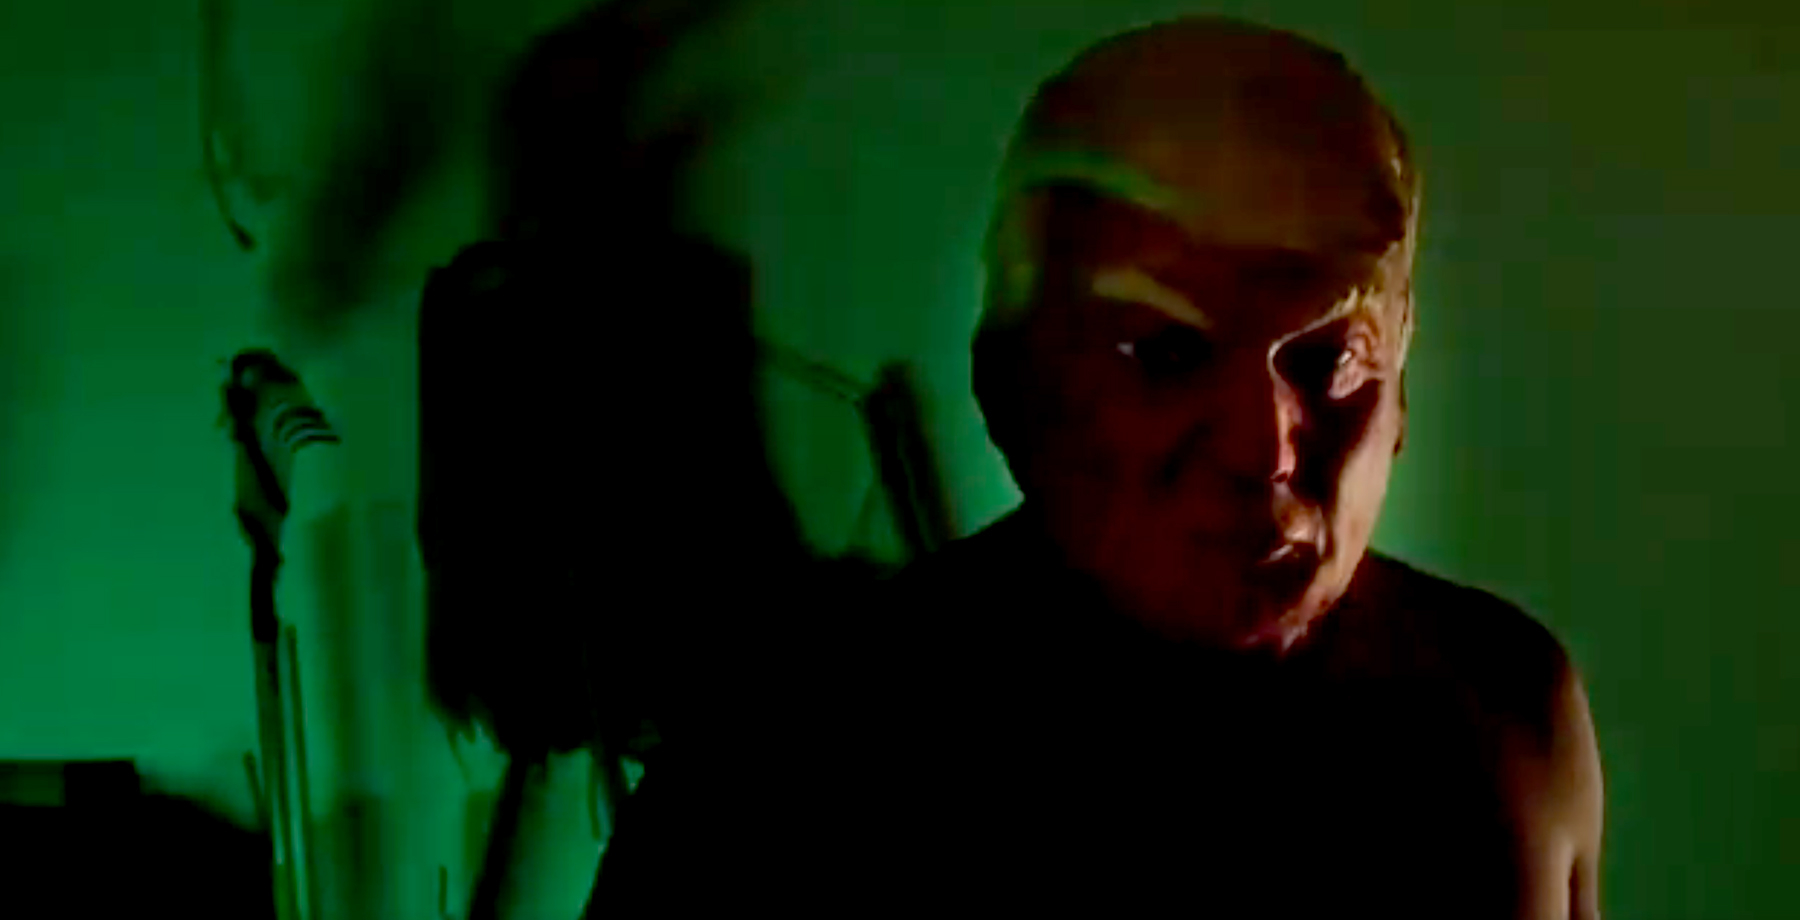 A Donald Trump mask appears in the American Horror Story: Cult's credits.